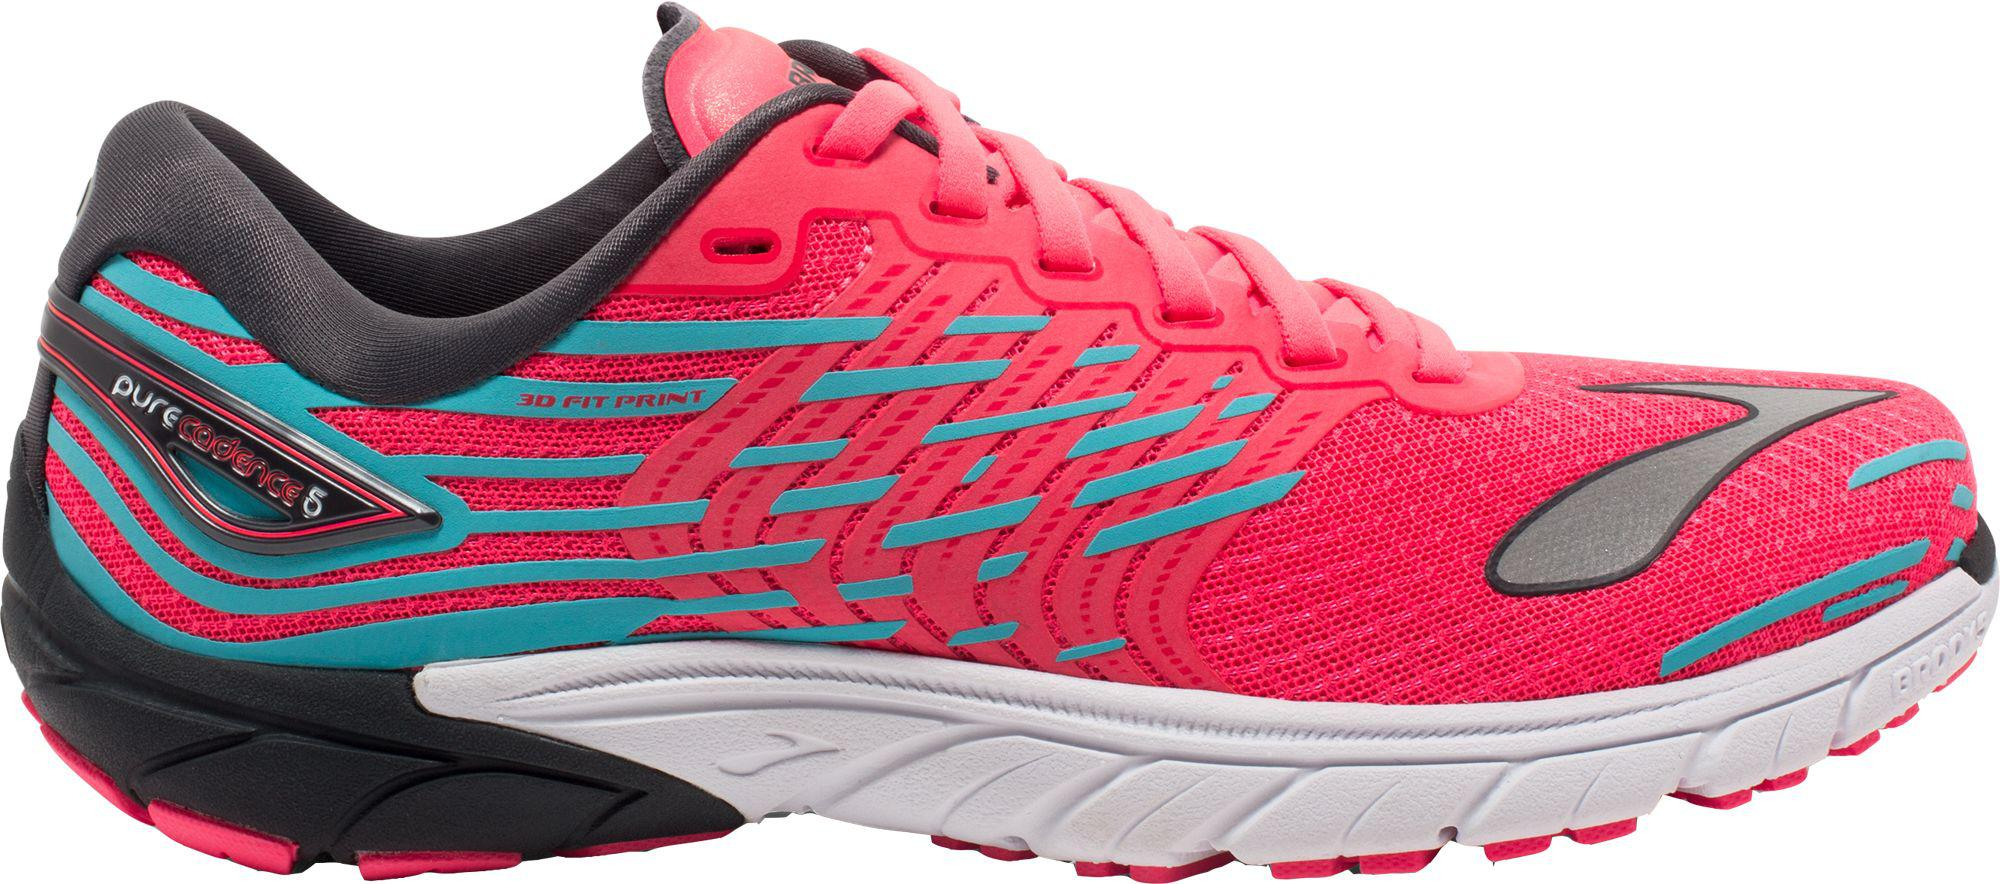 Pink Brooks Running Purecadence In Shoes Lyst 5 For Men RUFqwOR1x